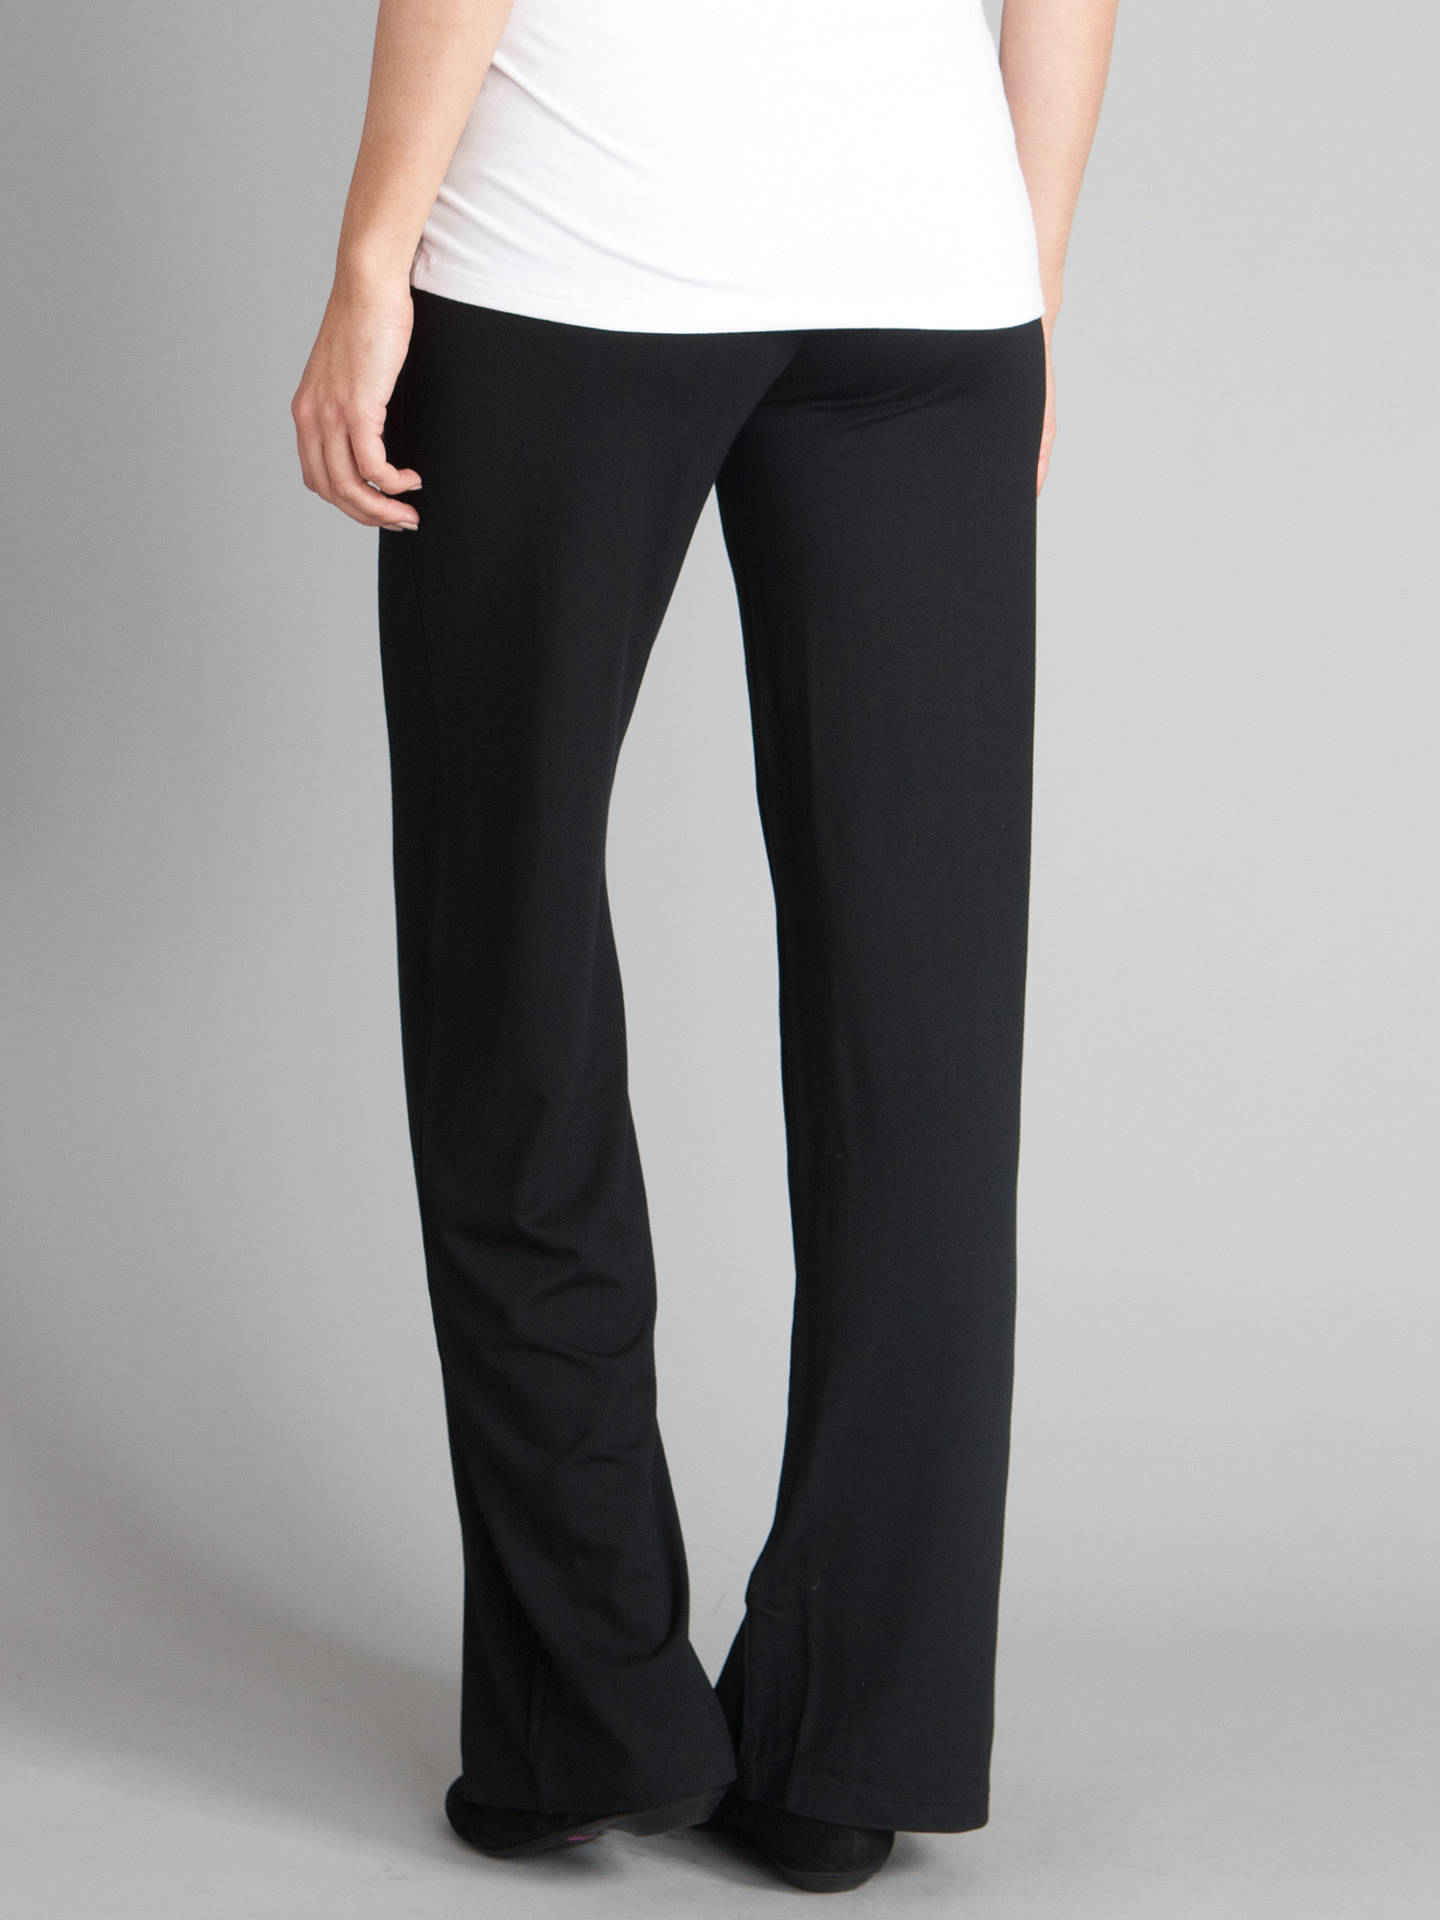 80549eeb5a99a ... Buy Séraphine Monica Roll Over Maternity Trousers, Black, 8 Online at  johnlewis.com ...